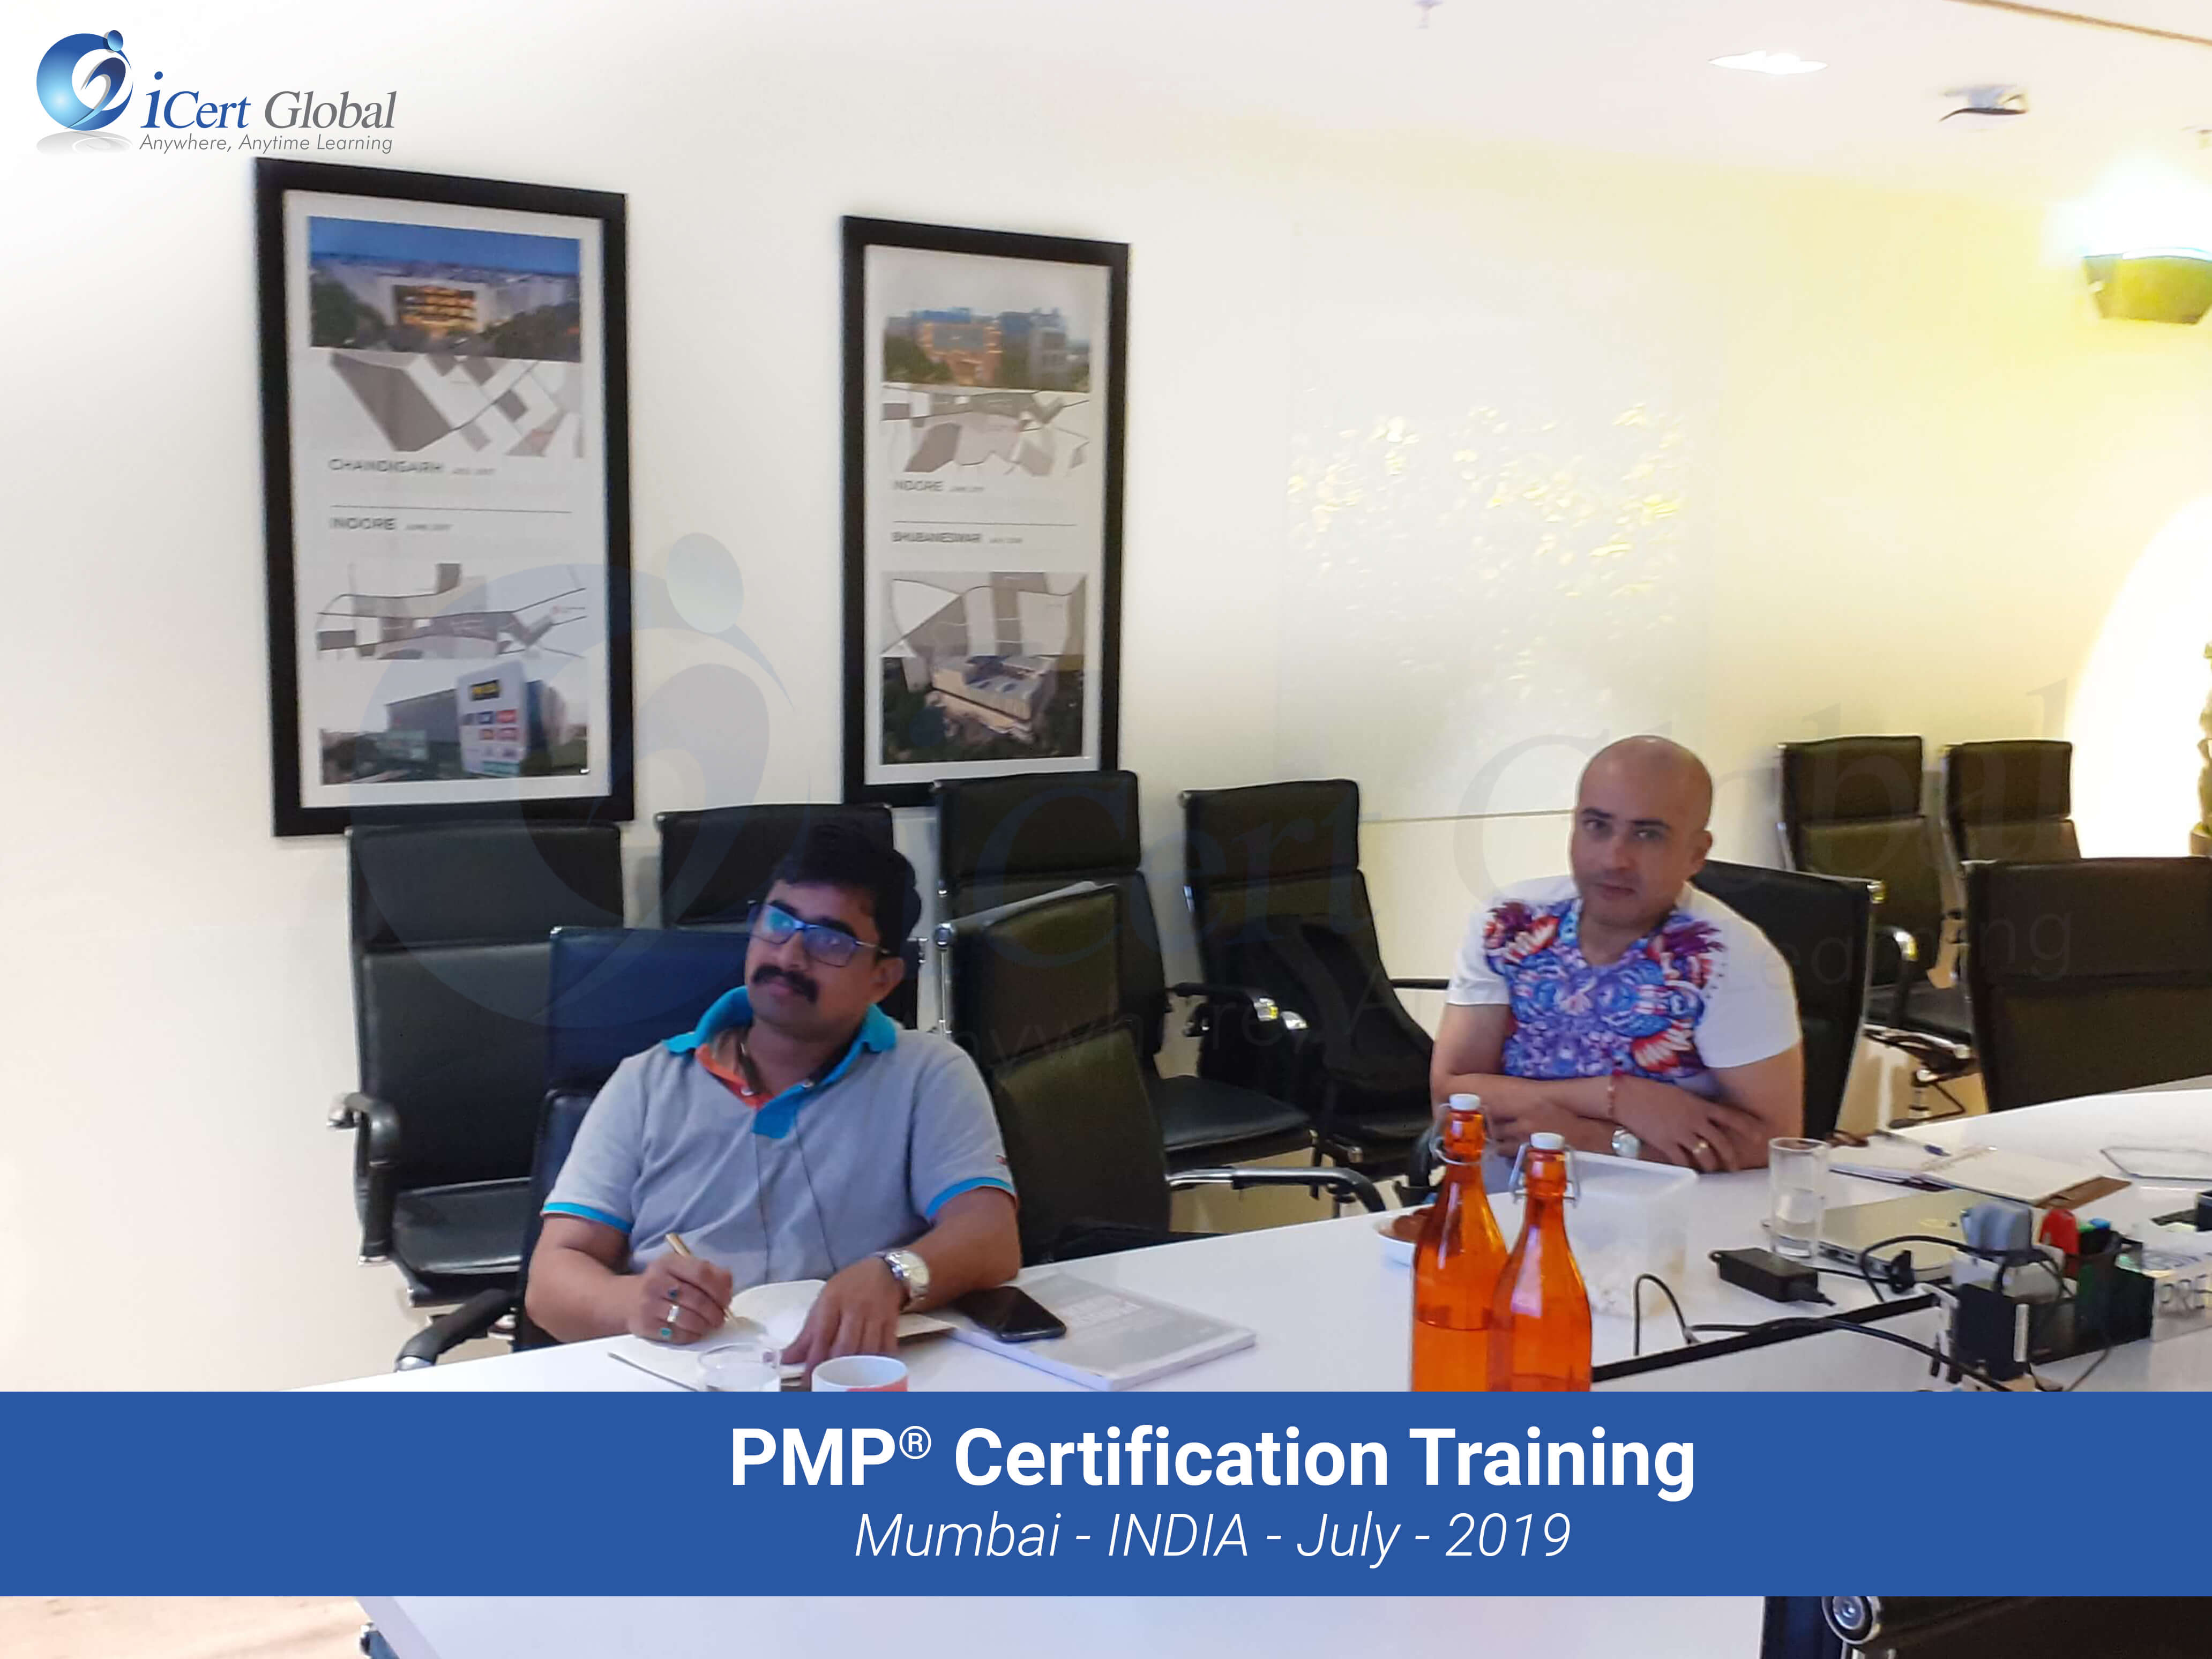 PMP Project Management Certification Training in Mumbai by iCert Global in July 2019